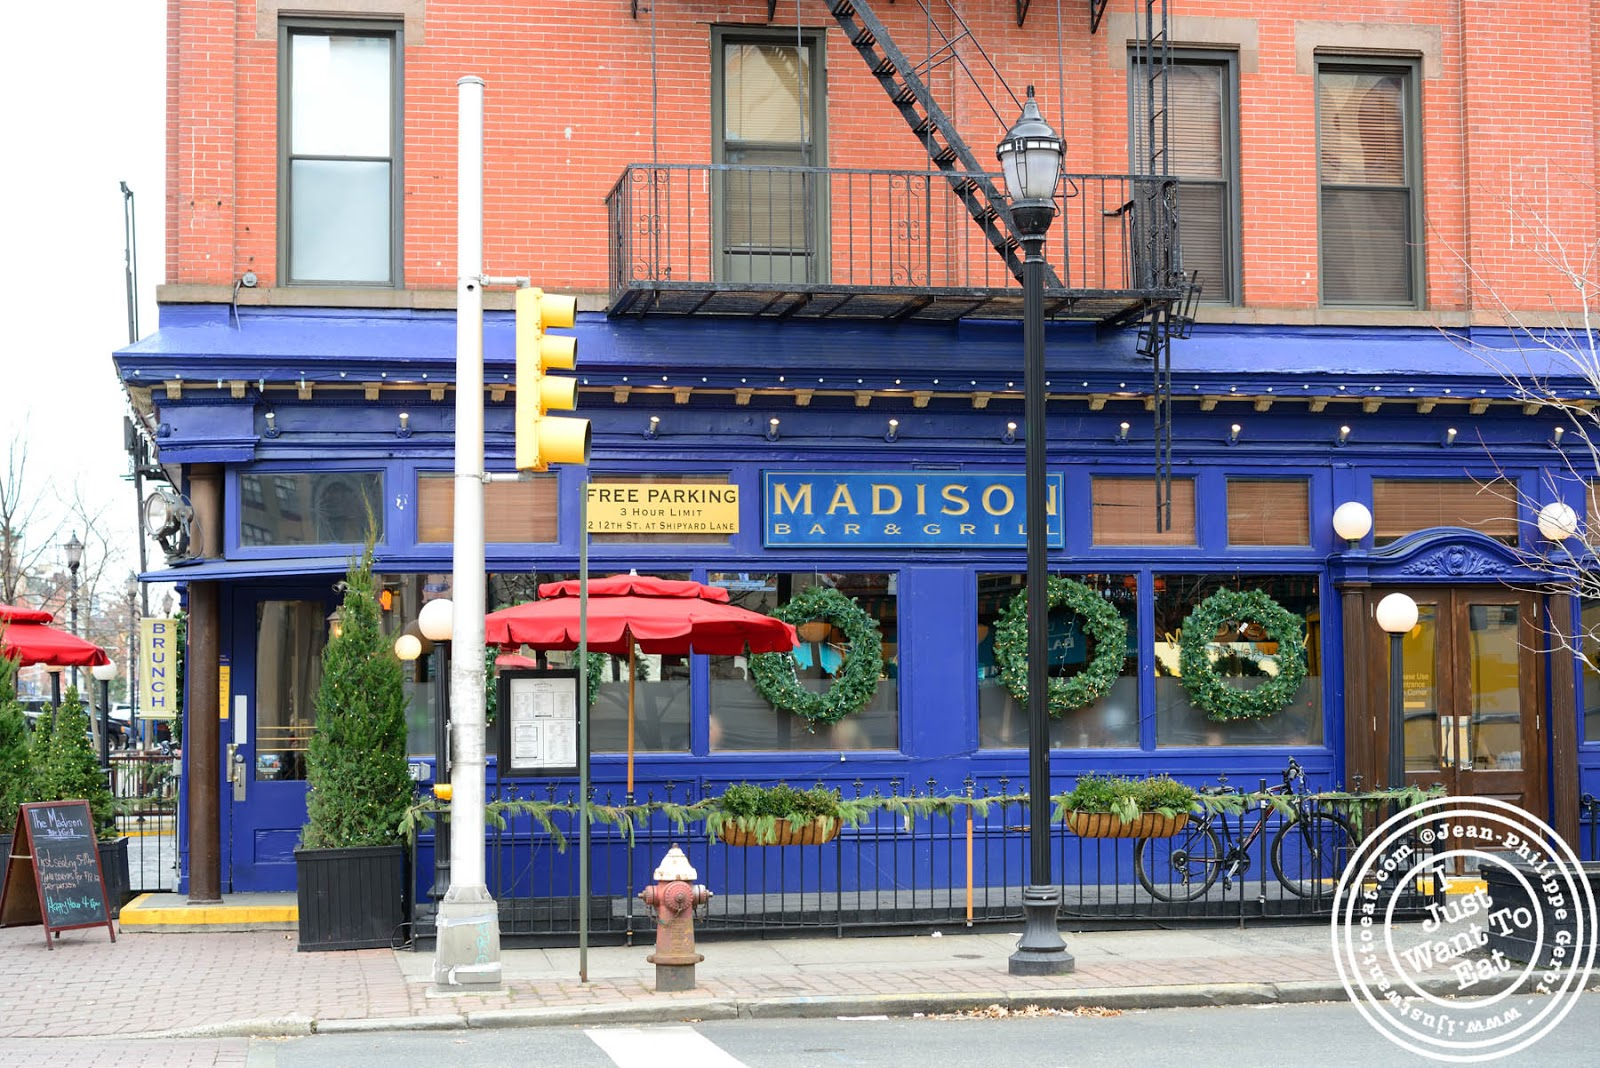 image of the entrance of the madison bar and grill in hoboken nj